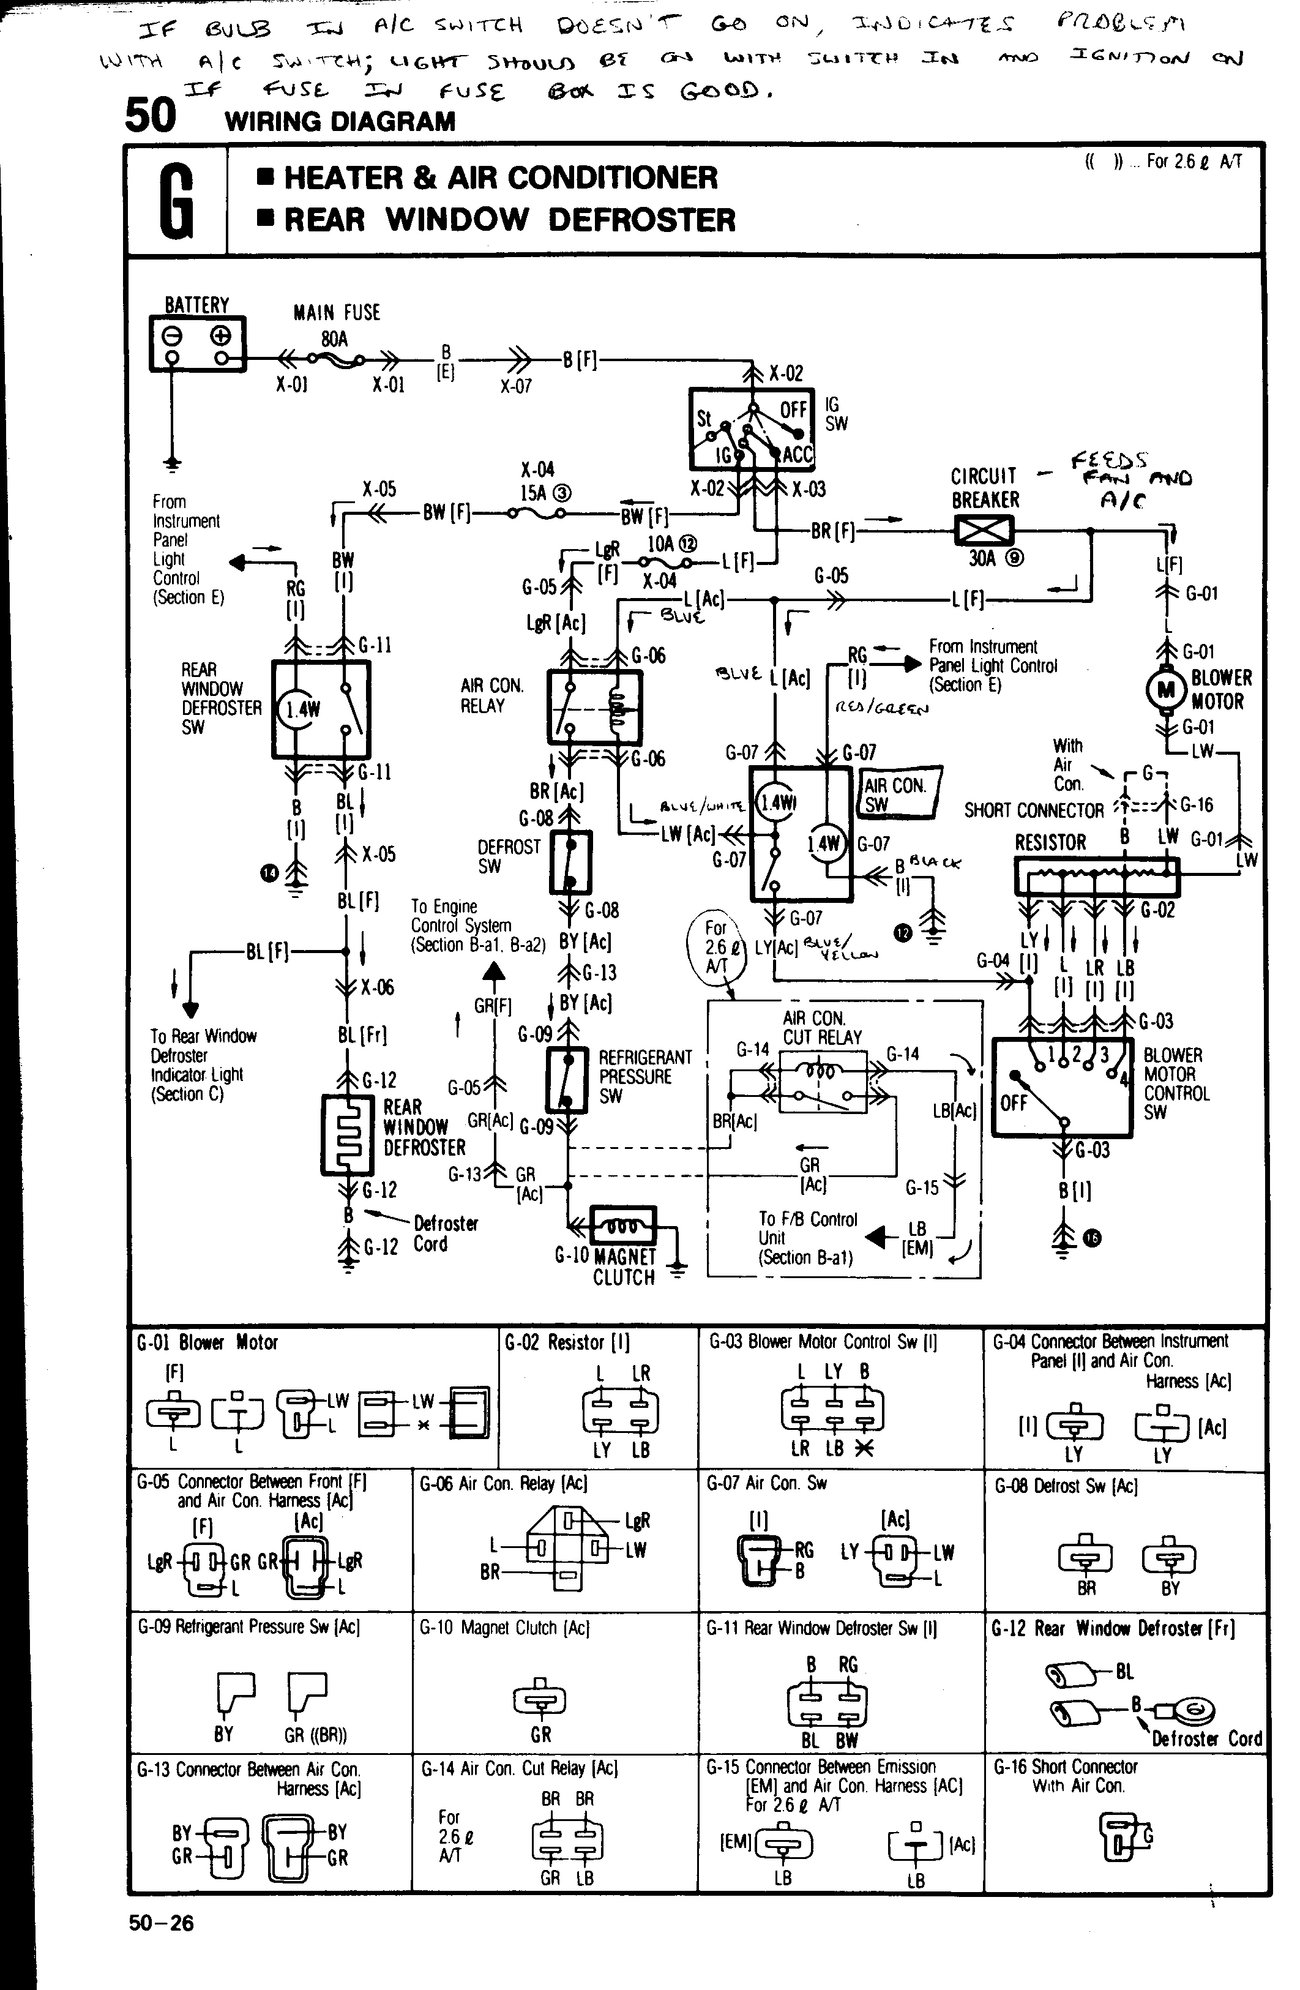 hight resolution of one can also test the wire to the ac clutch itself to see if that has 12 volts positive when the ac is switched on